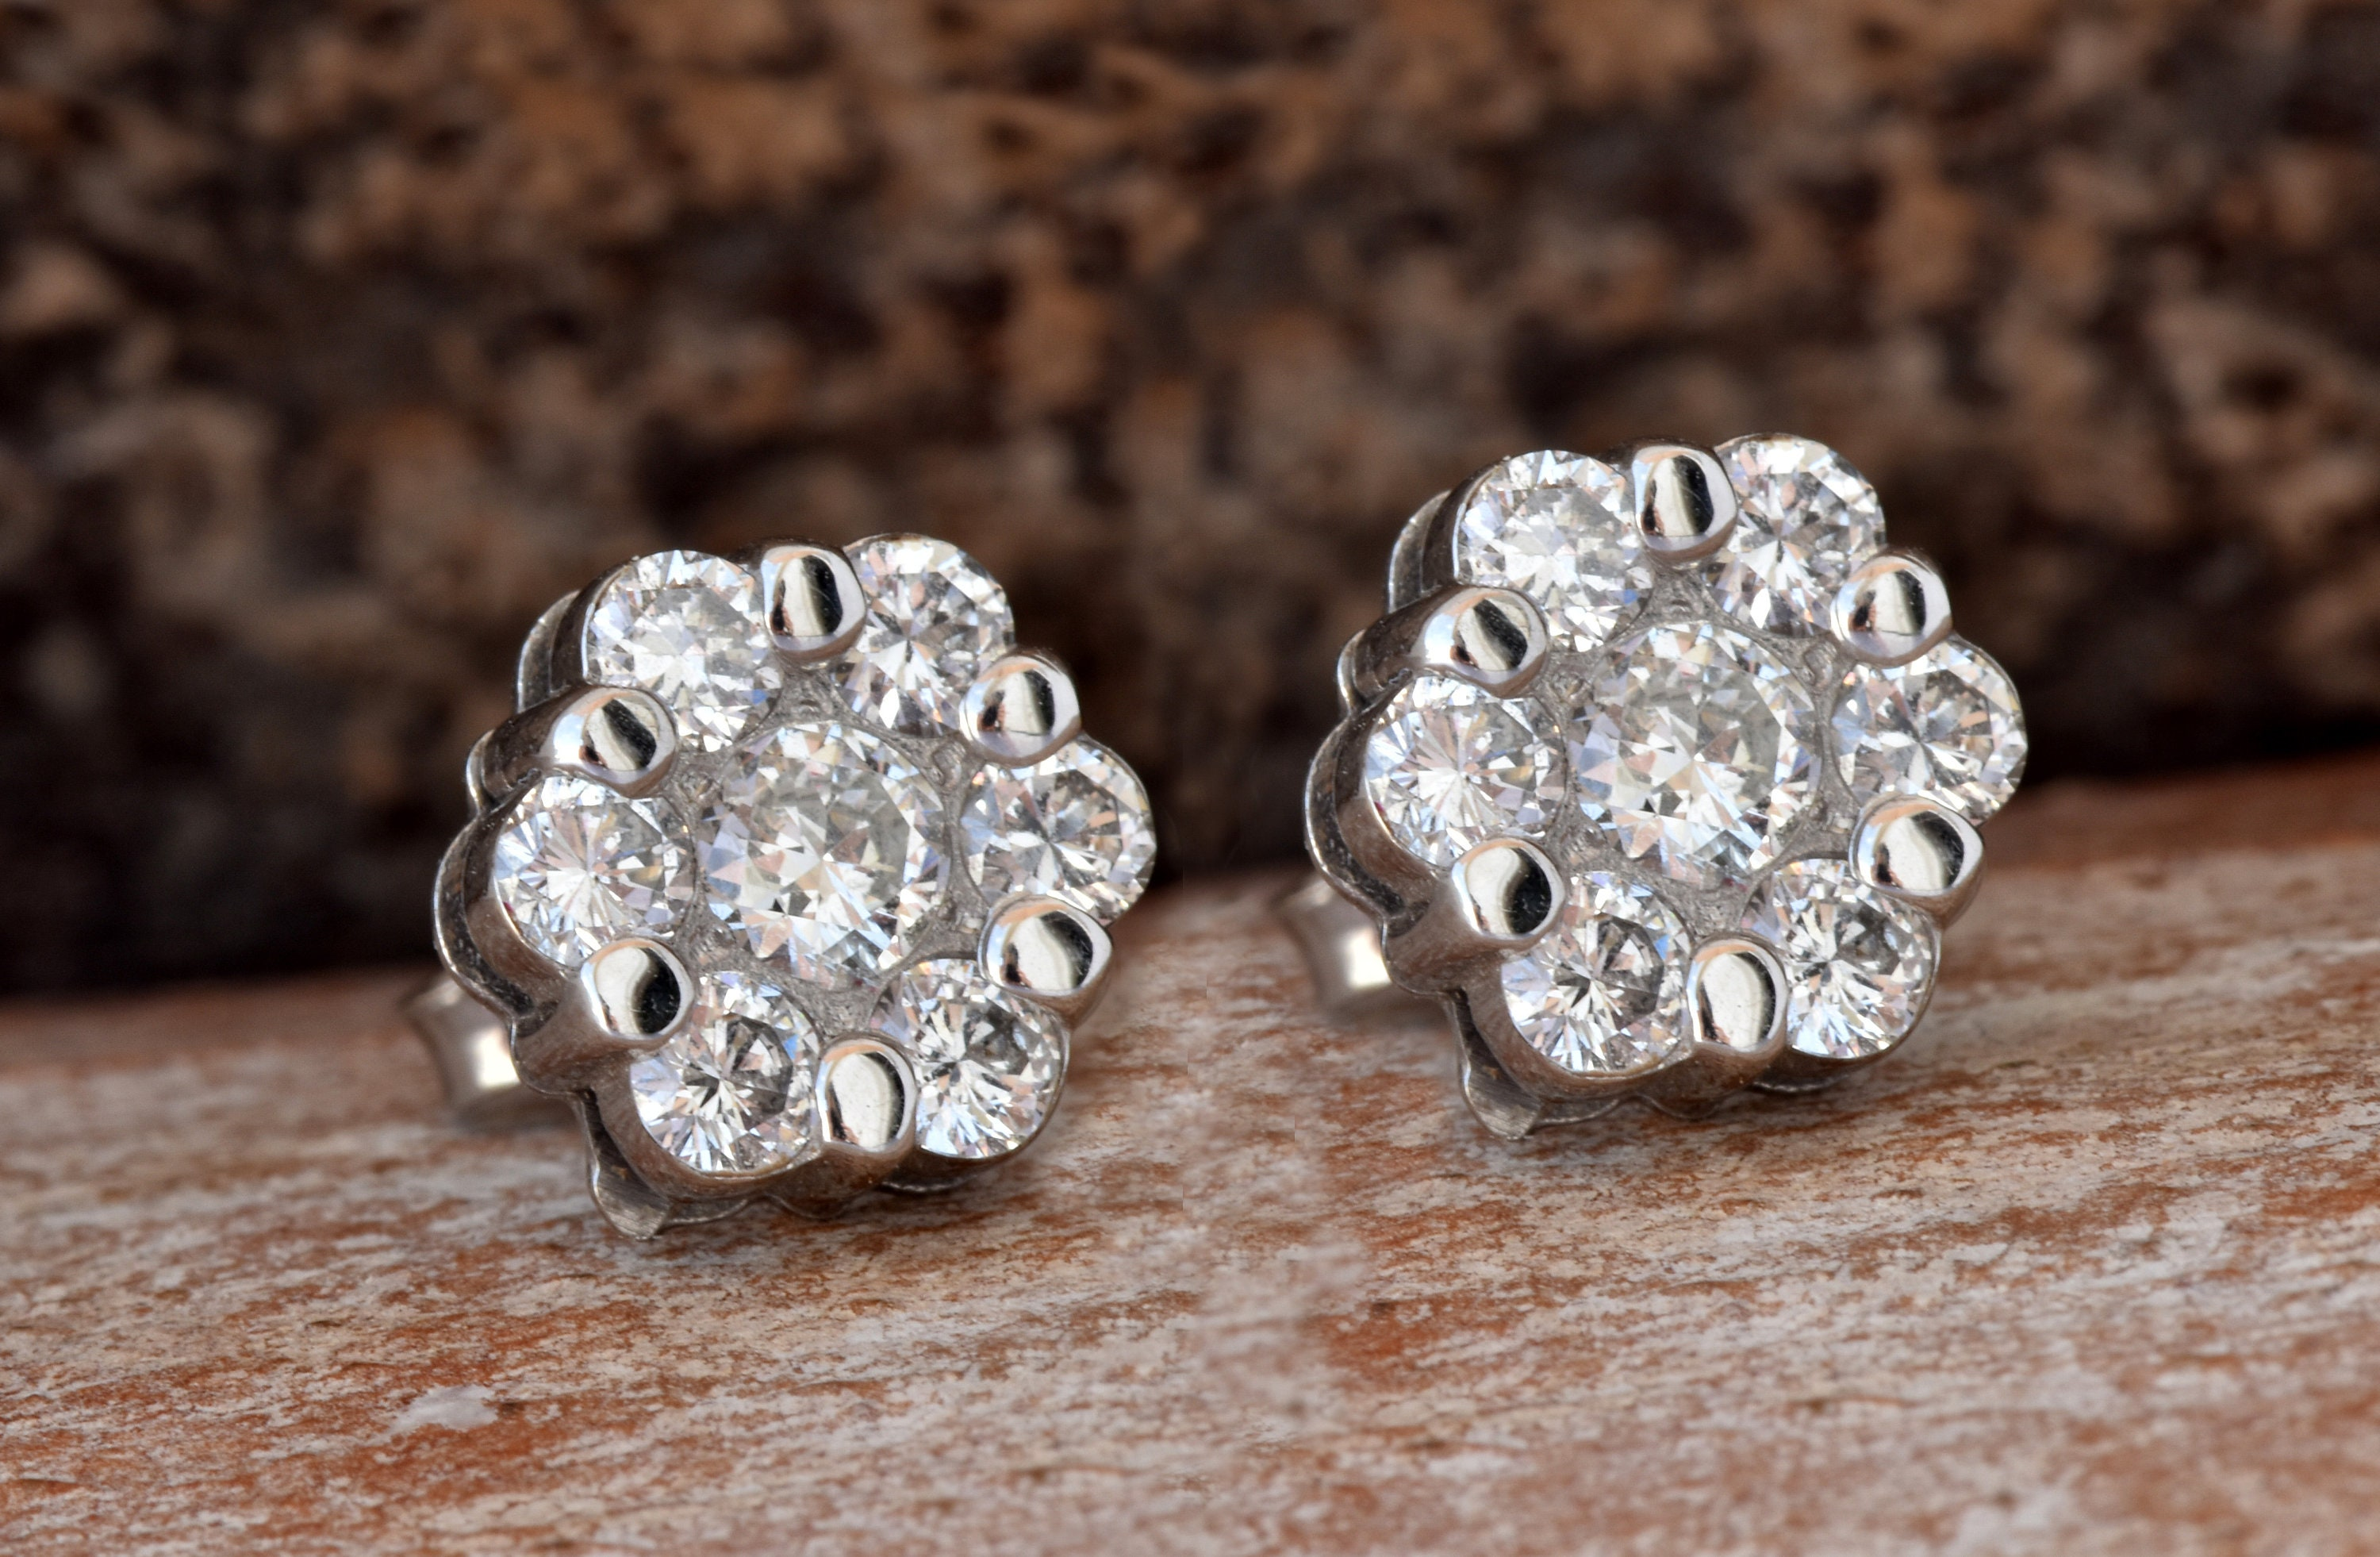 solitaire diamond and id tiffany org at for sale jewelry co dia carat j a earrings stud